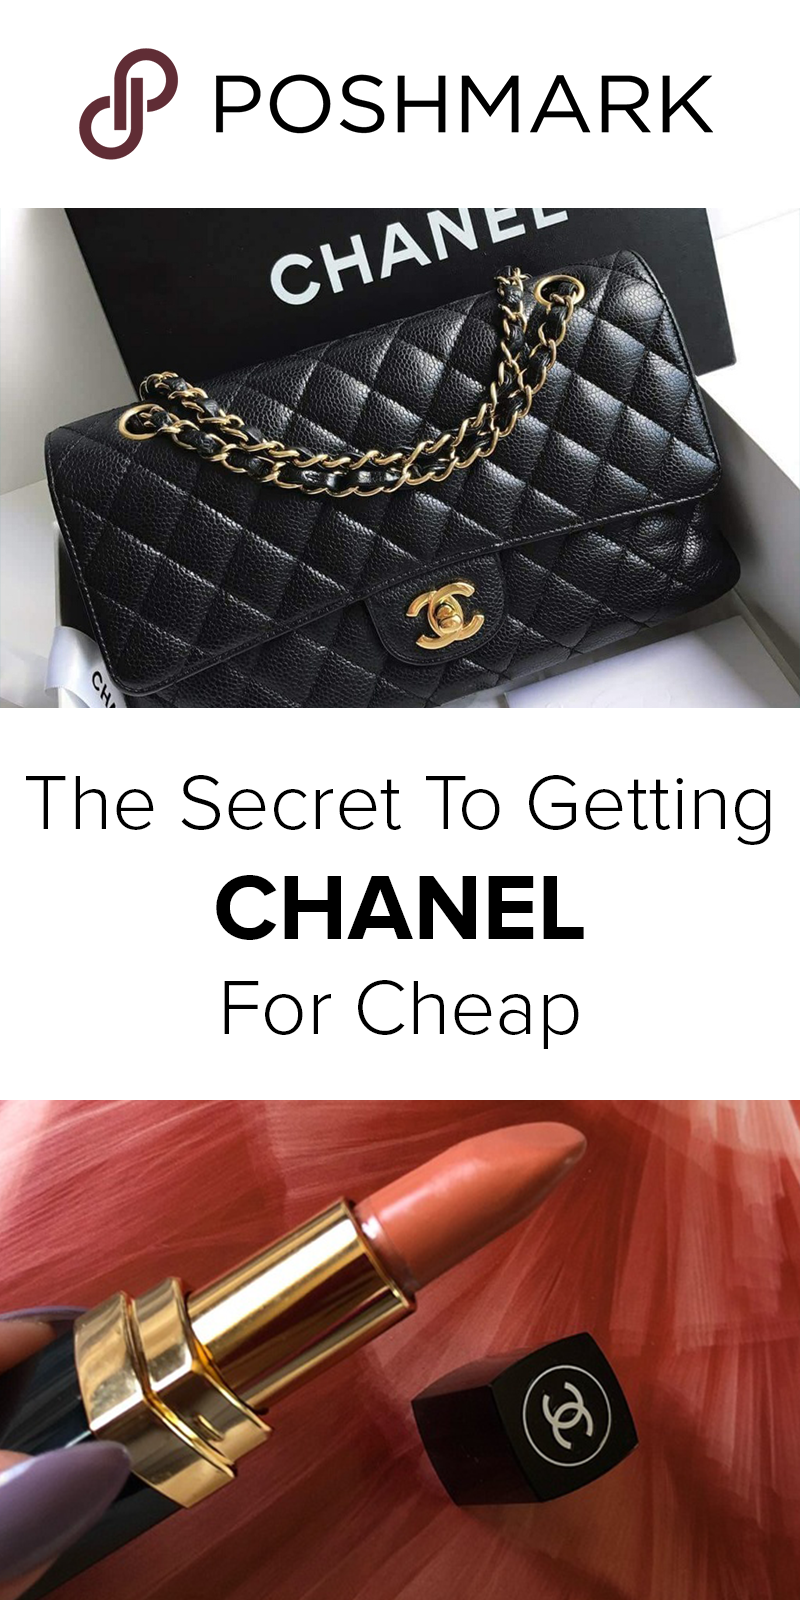 75edae3c5a9210 Find deals on authentic Chanel bags, accessories and more on Poshmark.  Download the free app today and shop!